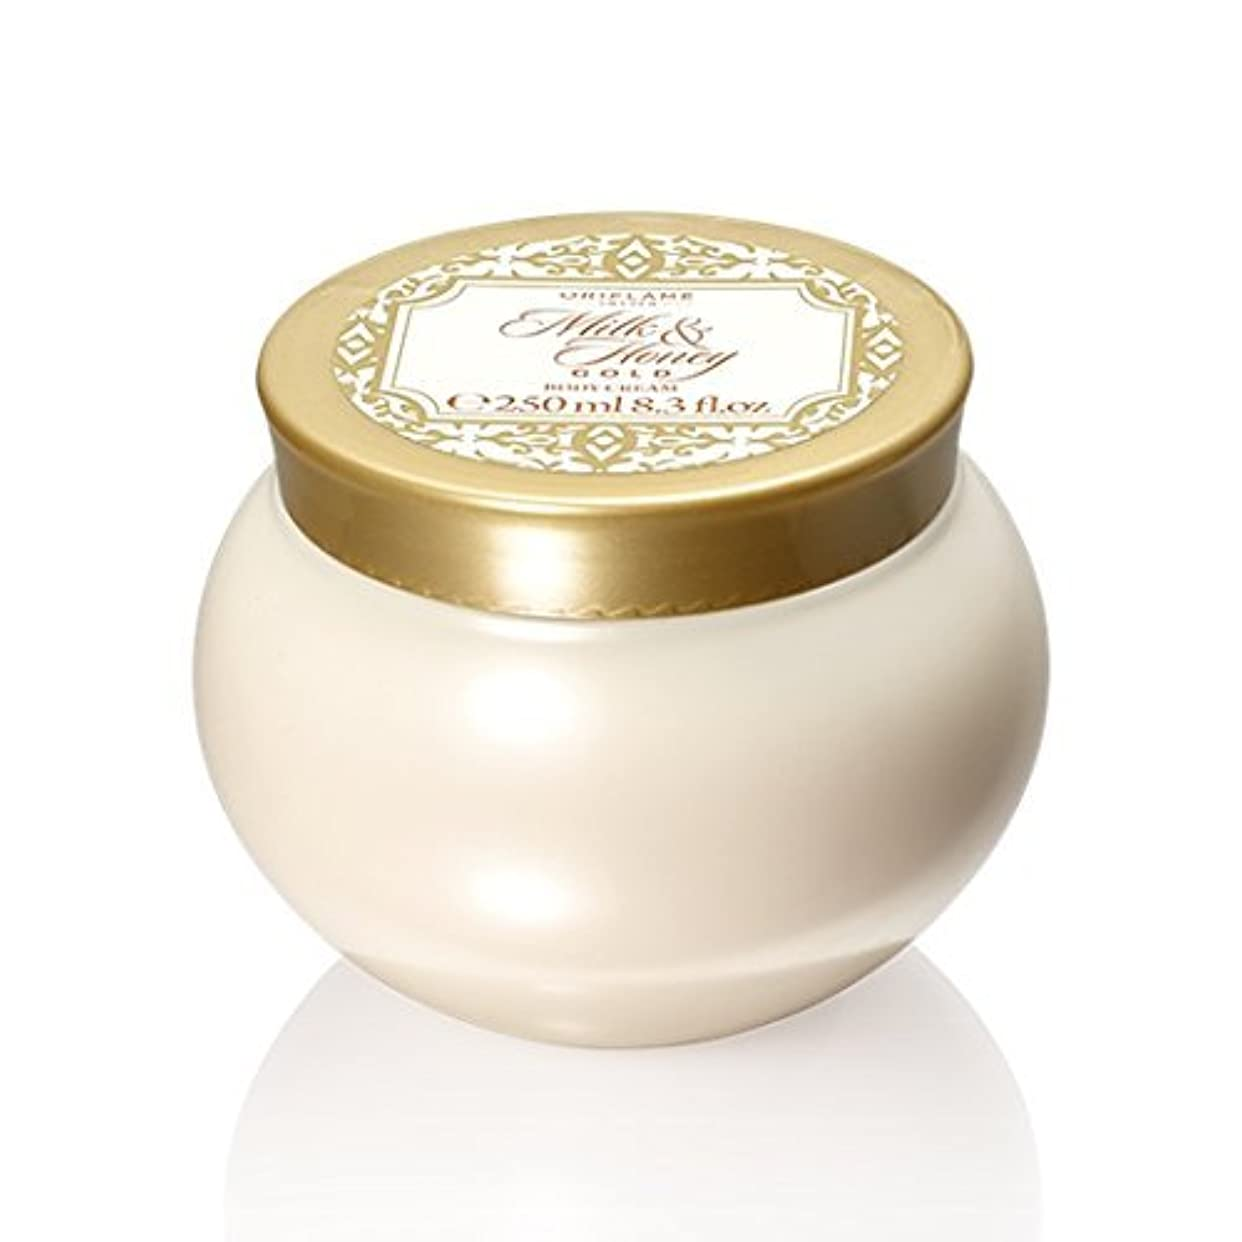 未亡人失態スピーカーMilk and Honey Gold Body Cream by Oriflame